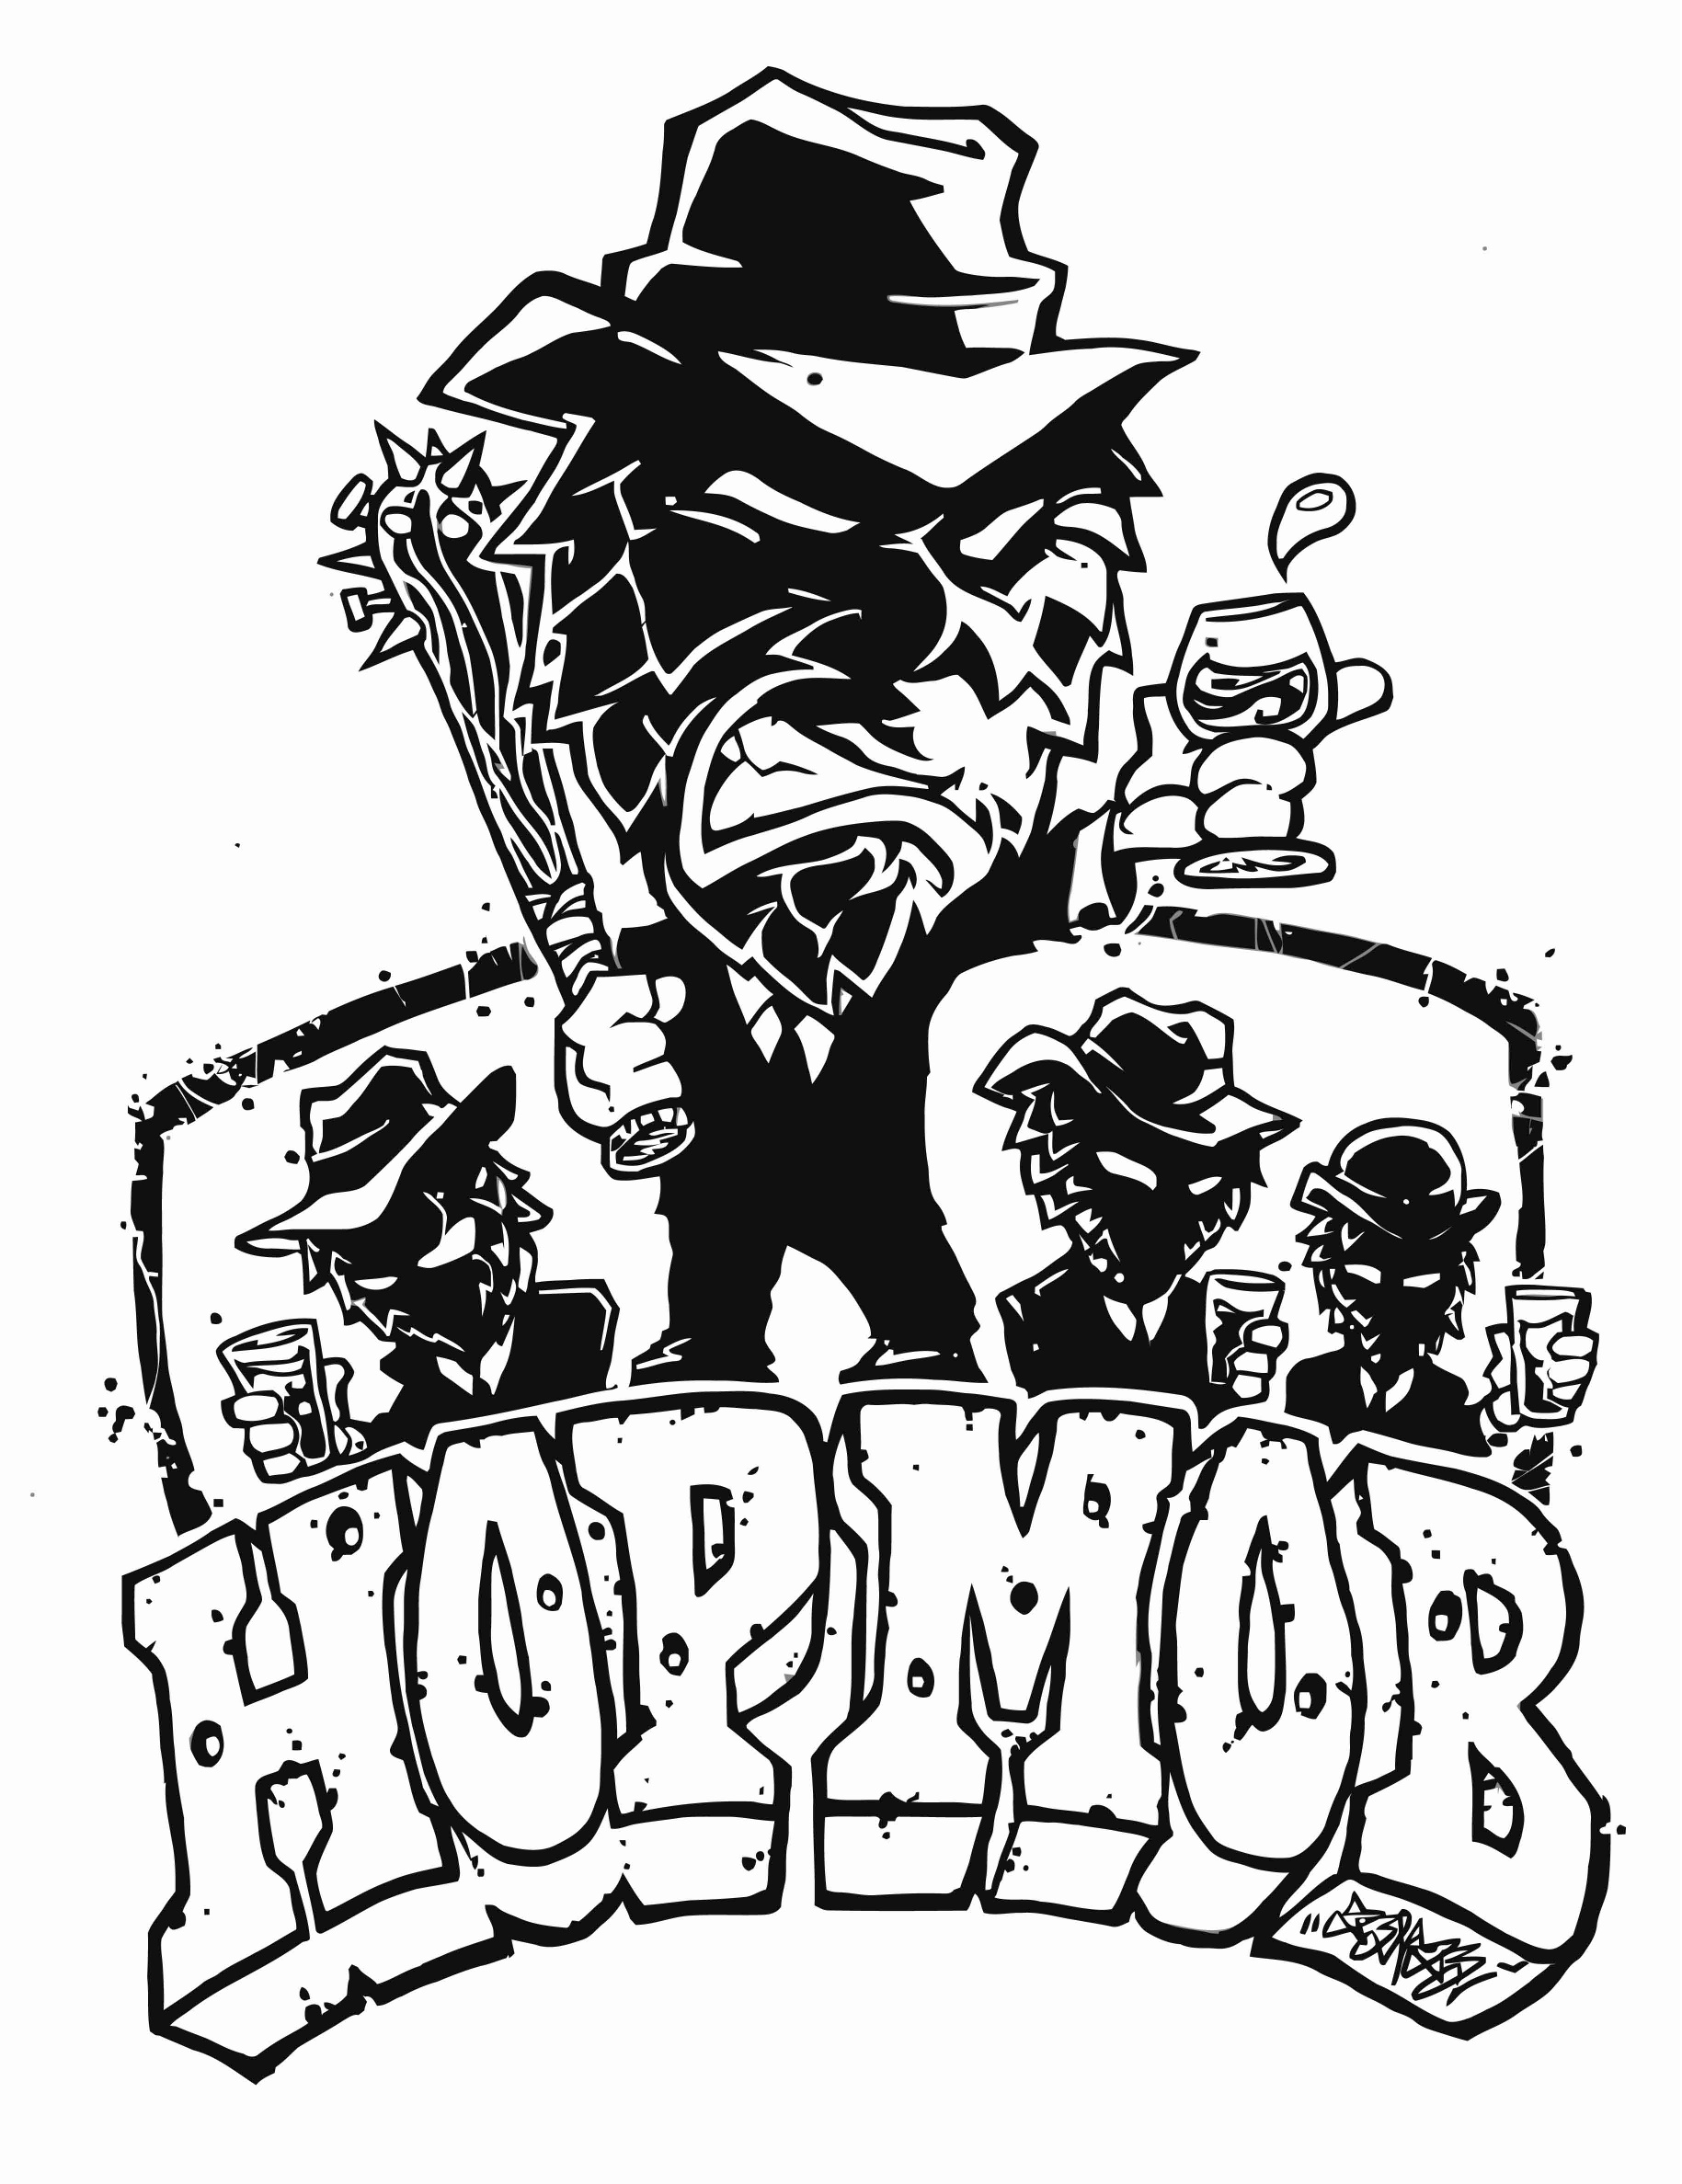 Thursday, February 1st, @3pm–4th Annual Hop Mob Roadshow Kickoff